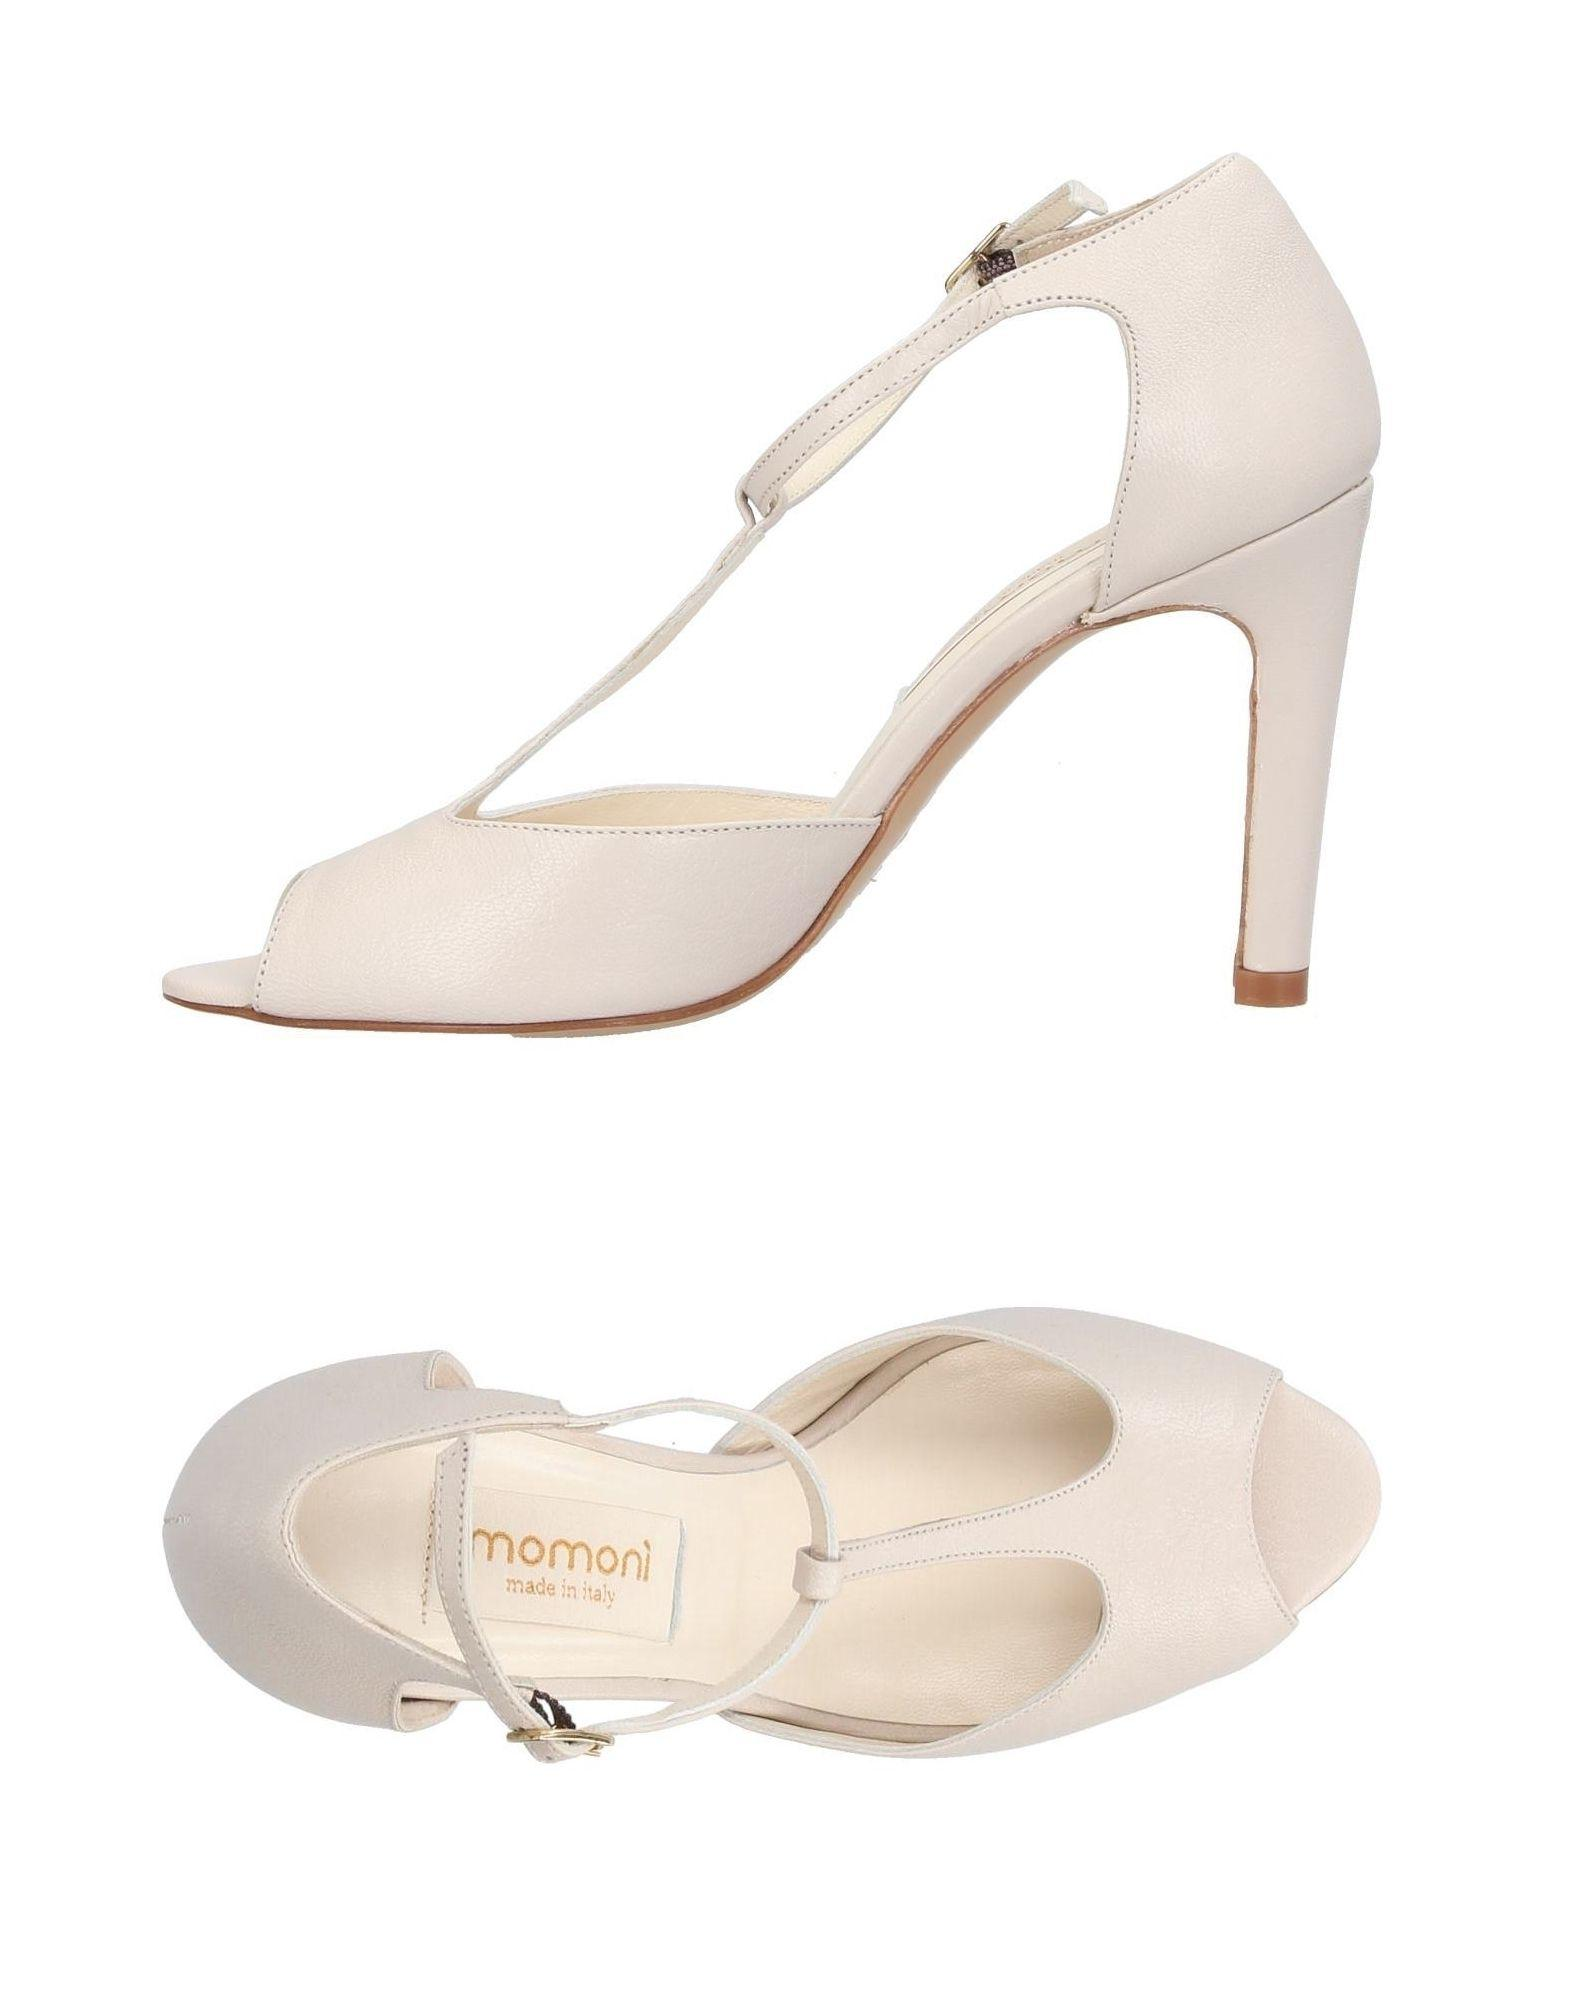 FOOTWEAR - Courts Momoni Cheap Best Seller Sale In China Shopping Online Sale Online Outlet Really OLDYaTD2